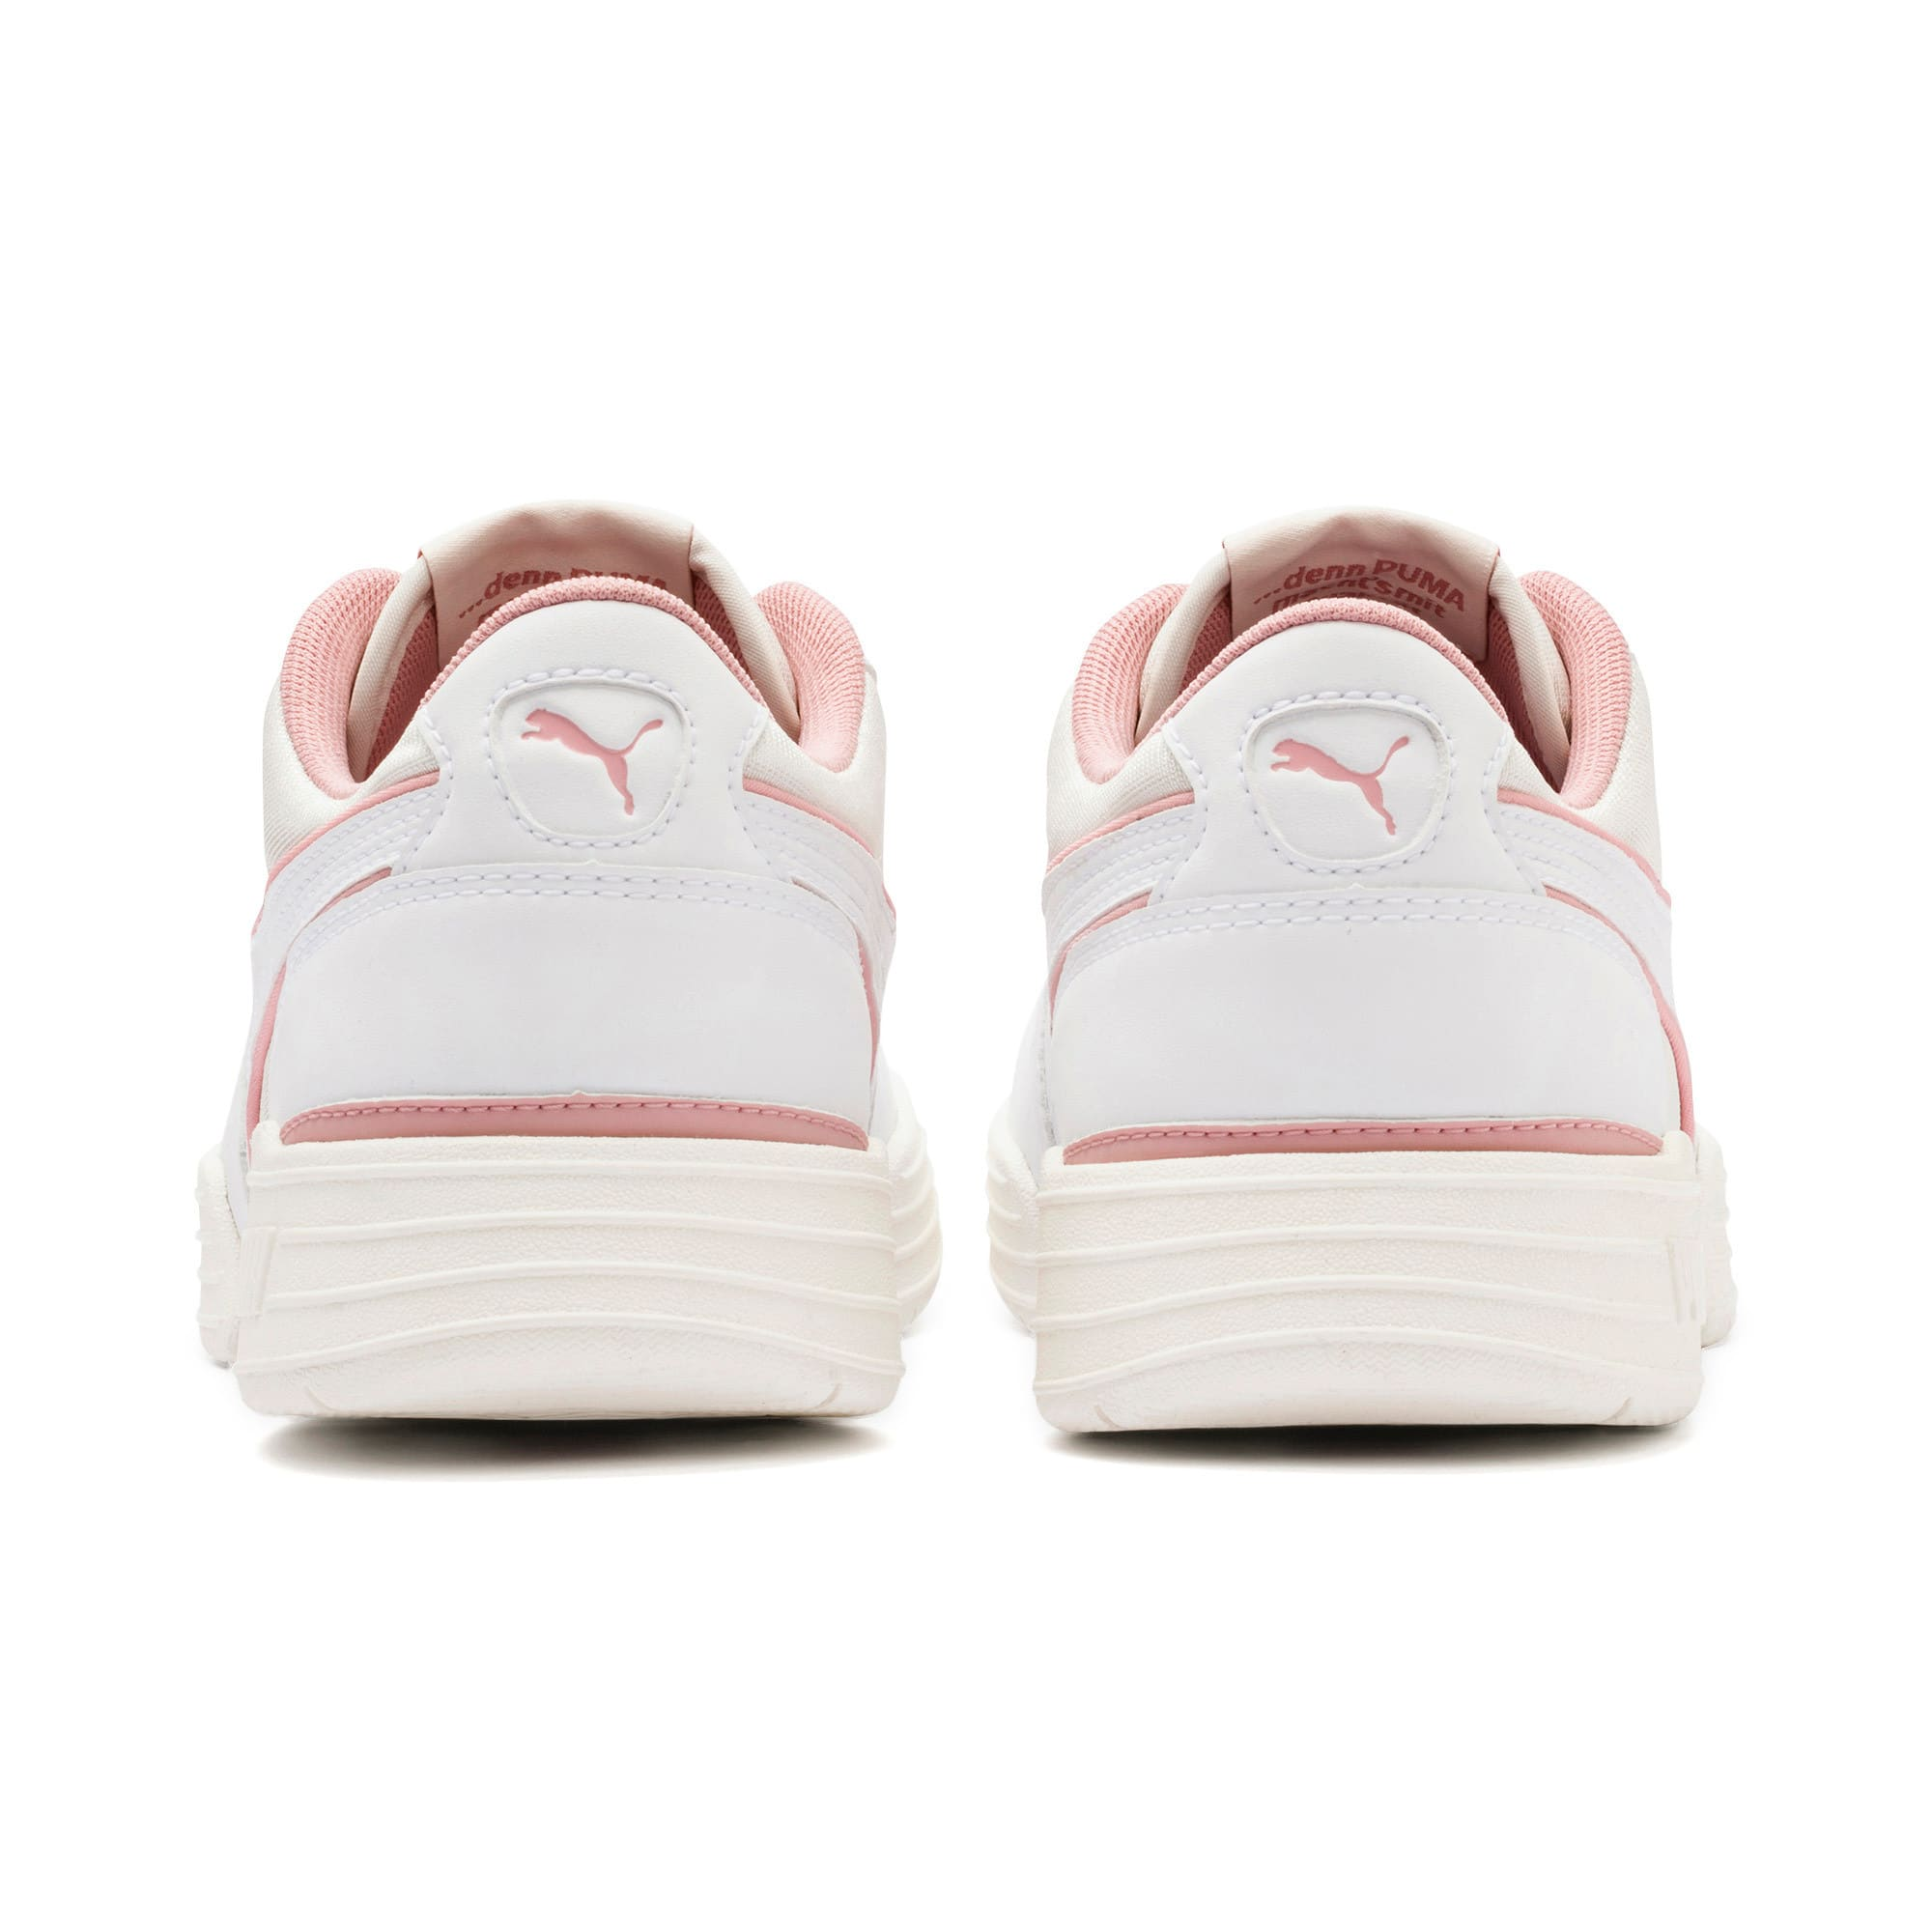 Thumbnail 5 of CGR Original Trainers, PWht-Bridal Rose-Marshmallow, medium-IND